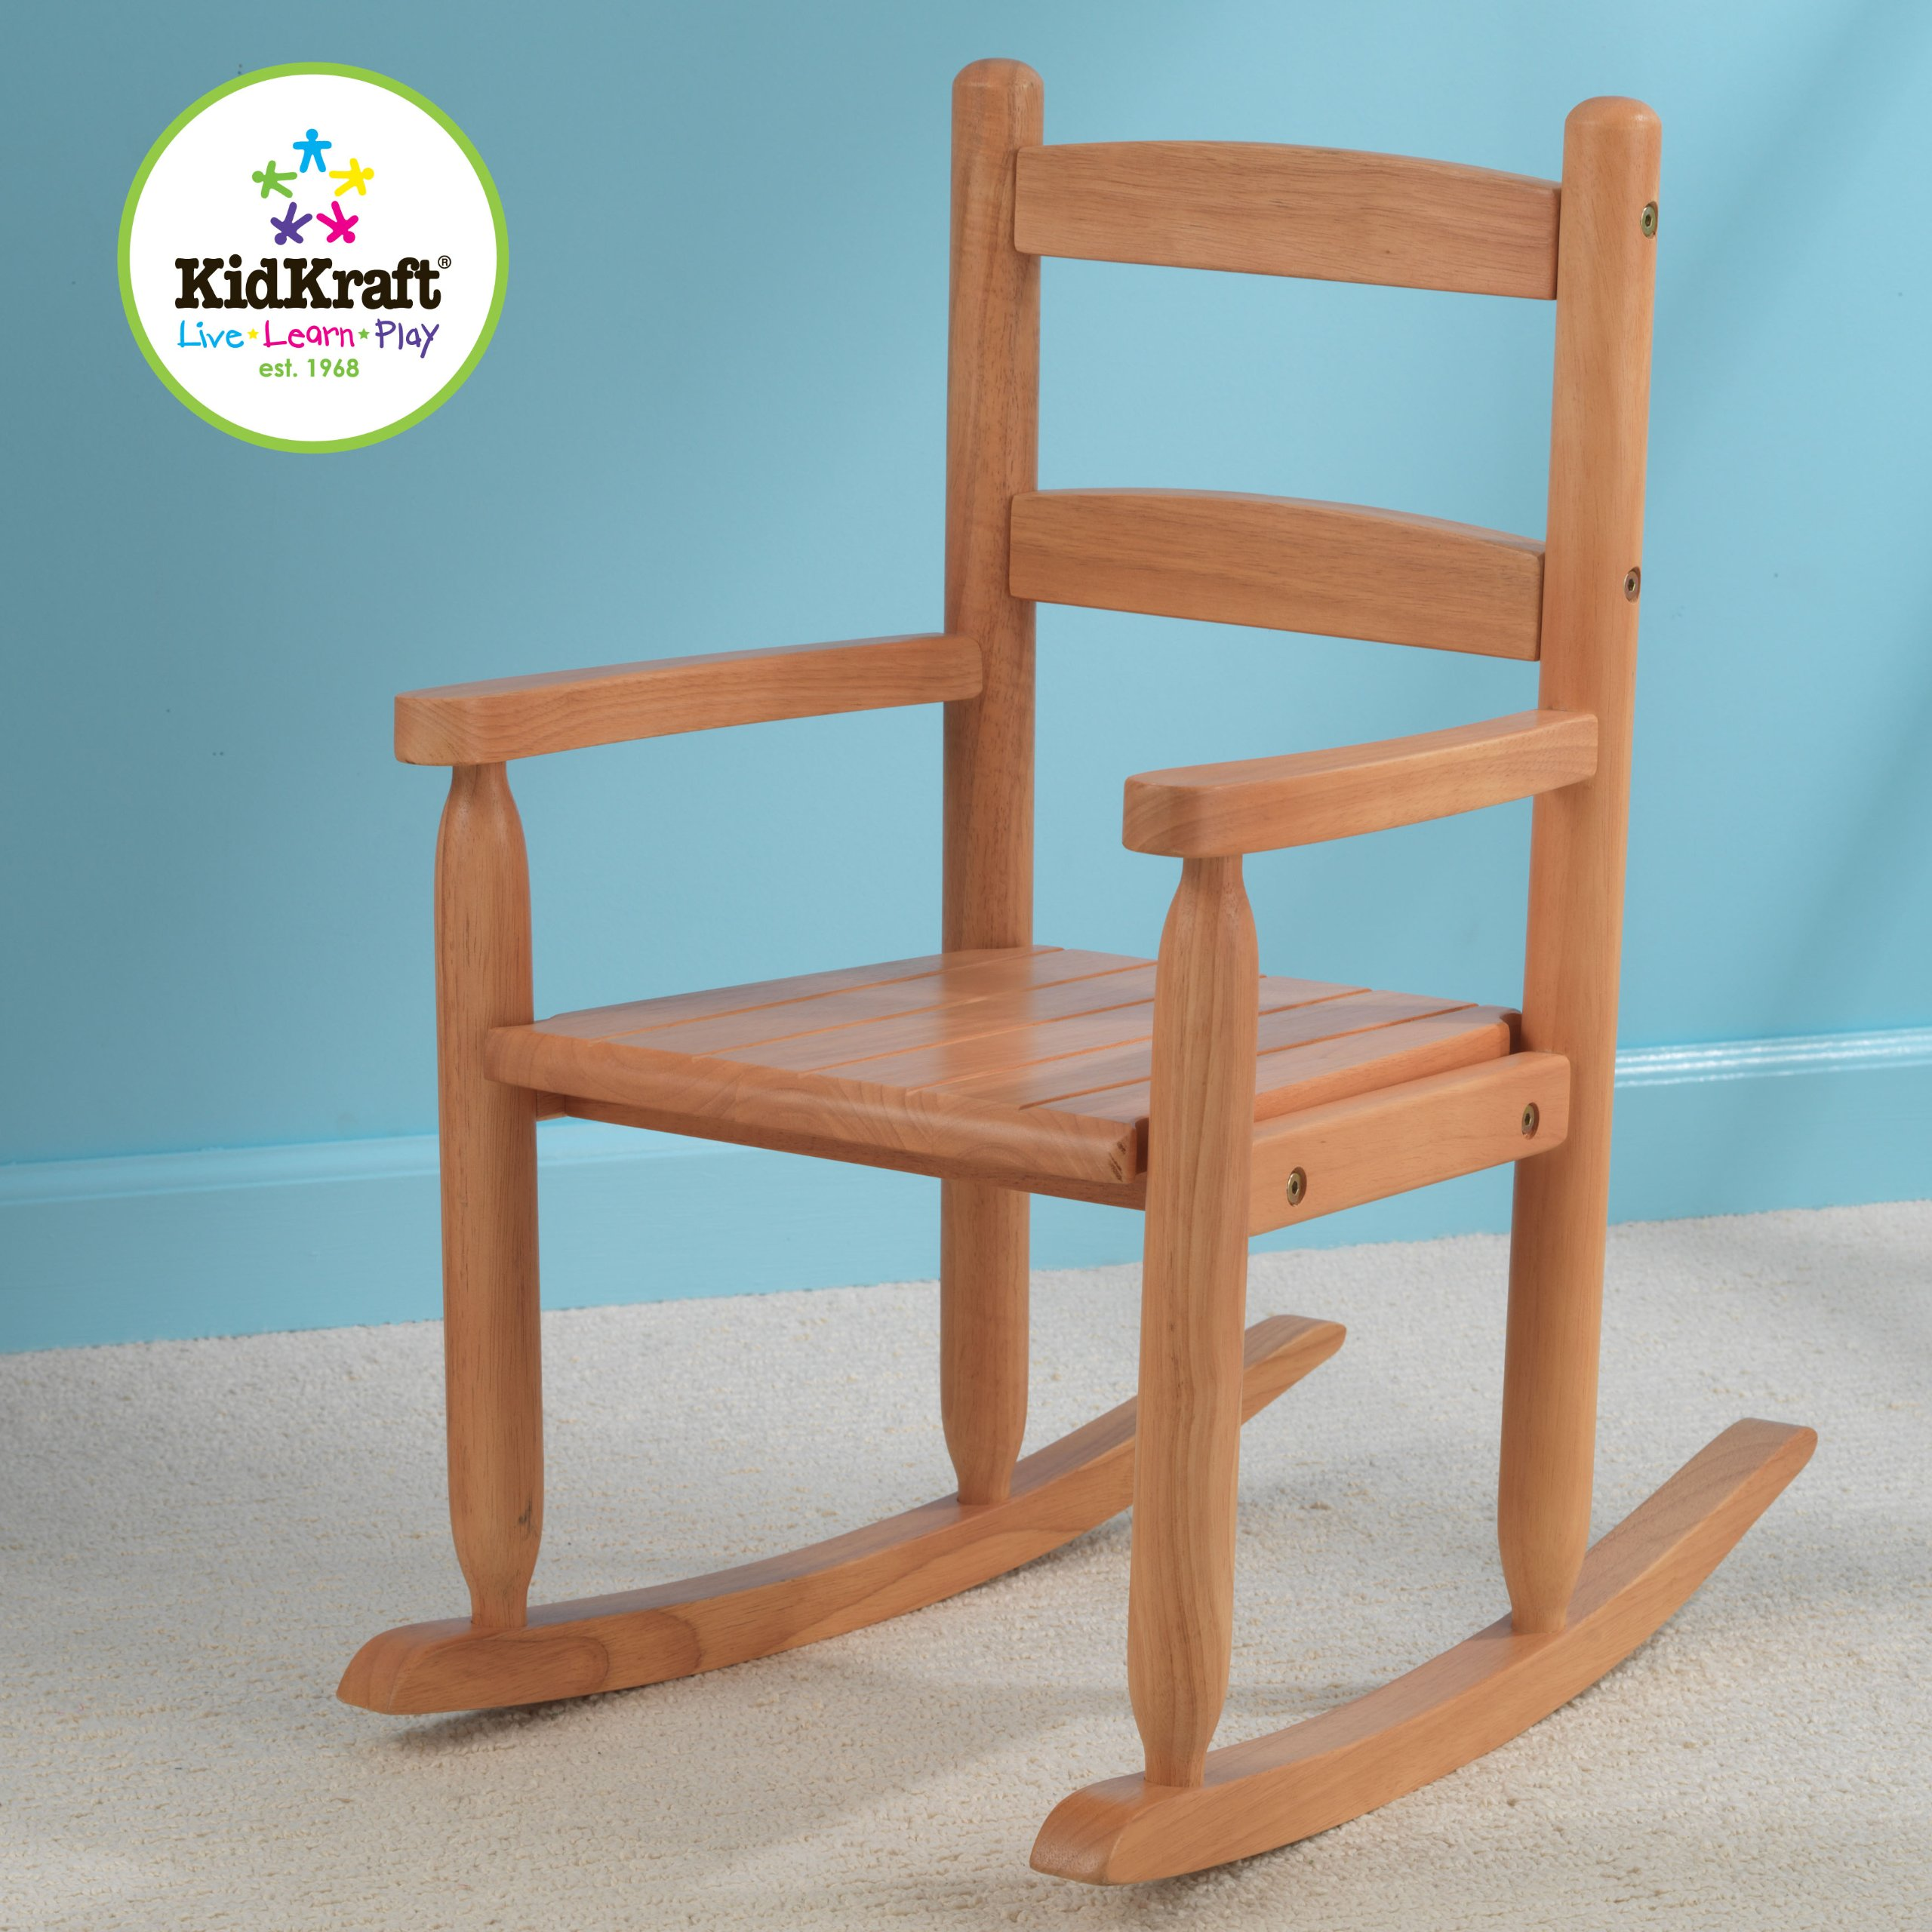 KidKraft 2-Slat Rocking Chair - Honey by KidKraft (Image #1)